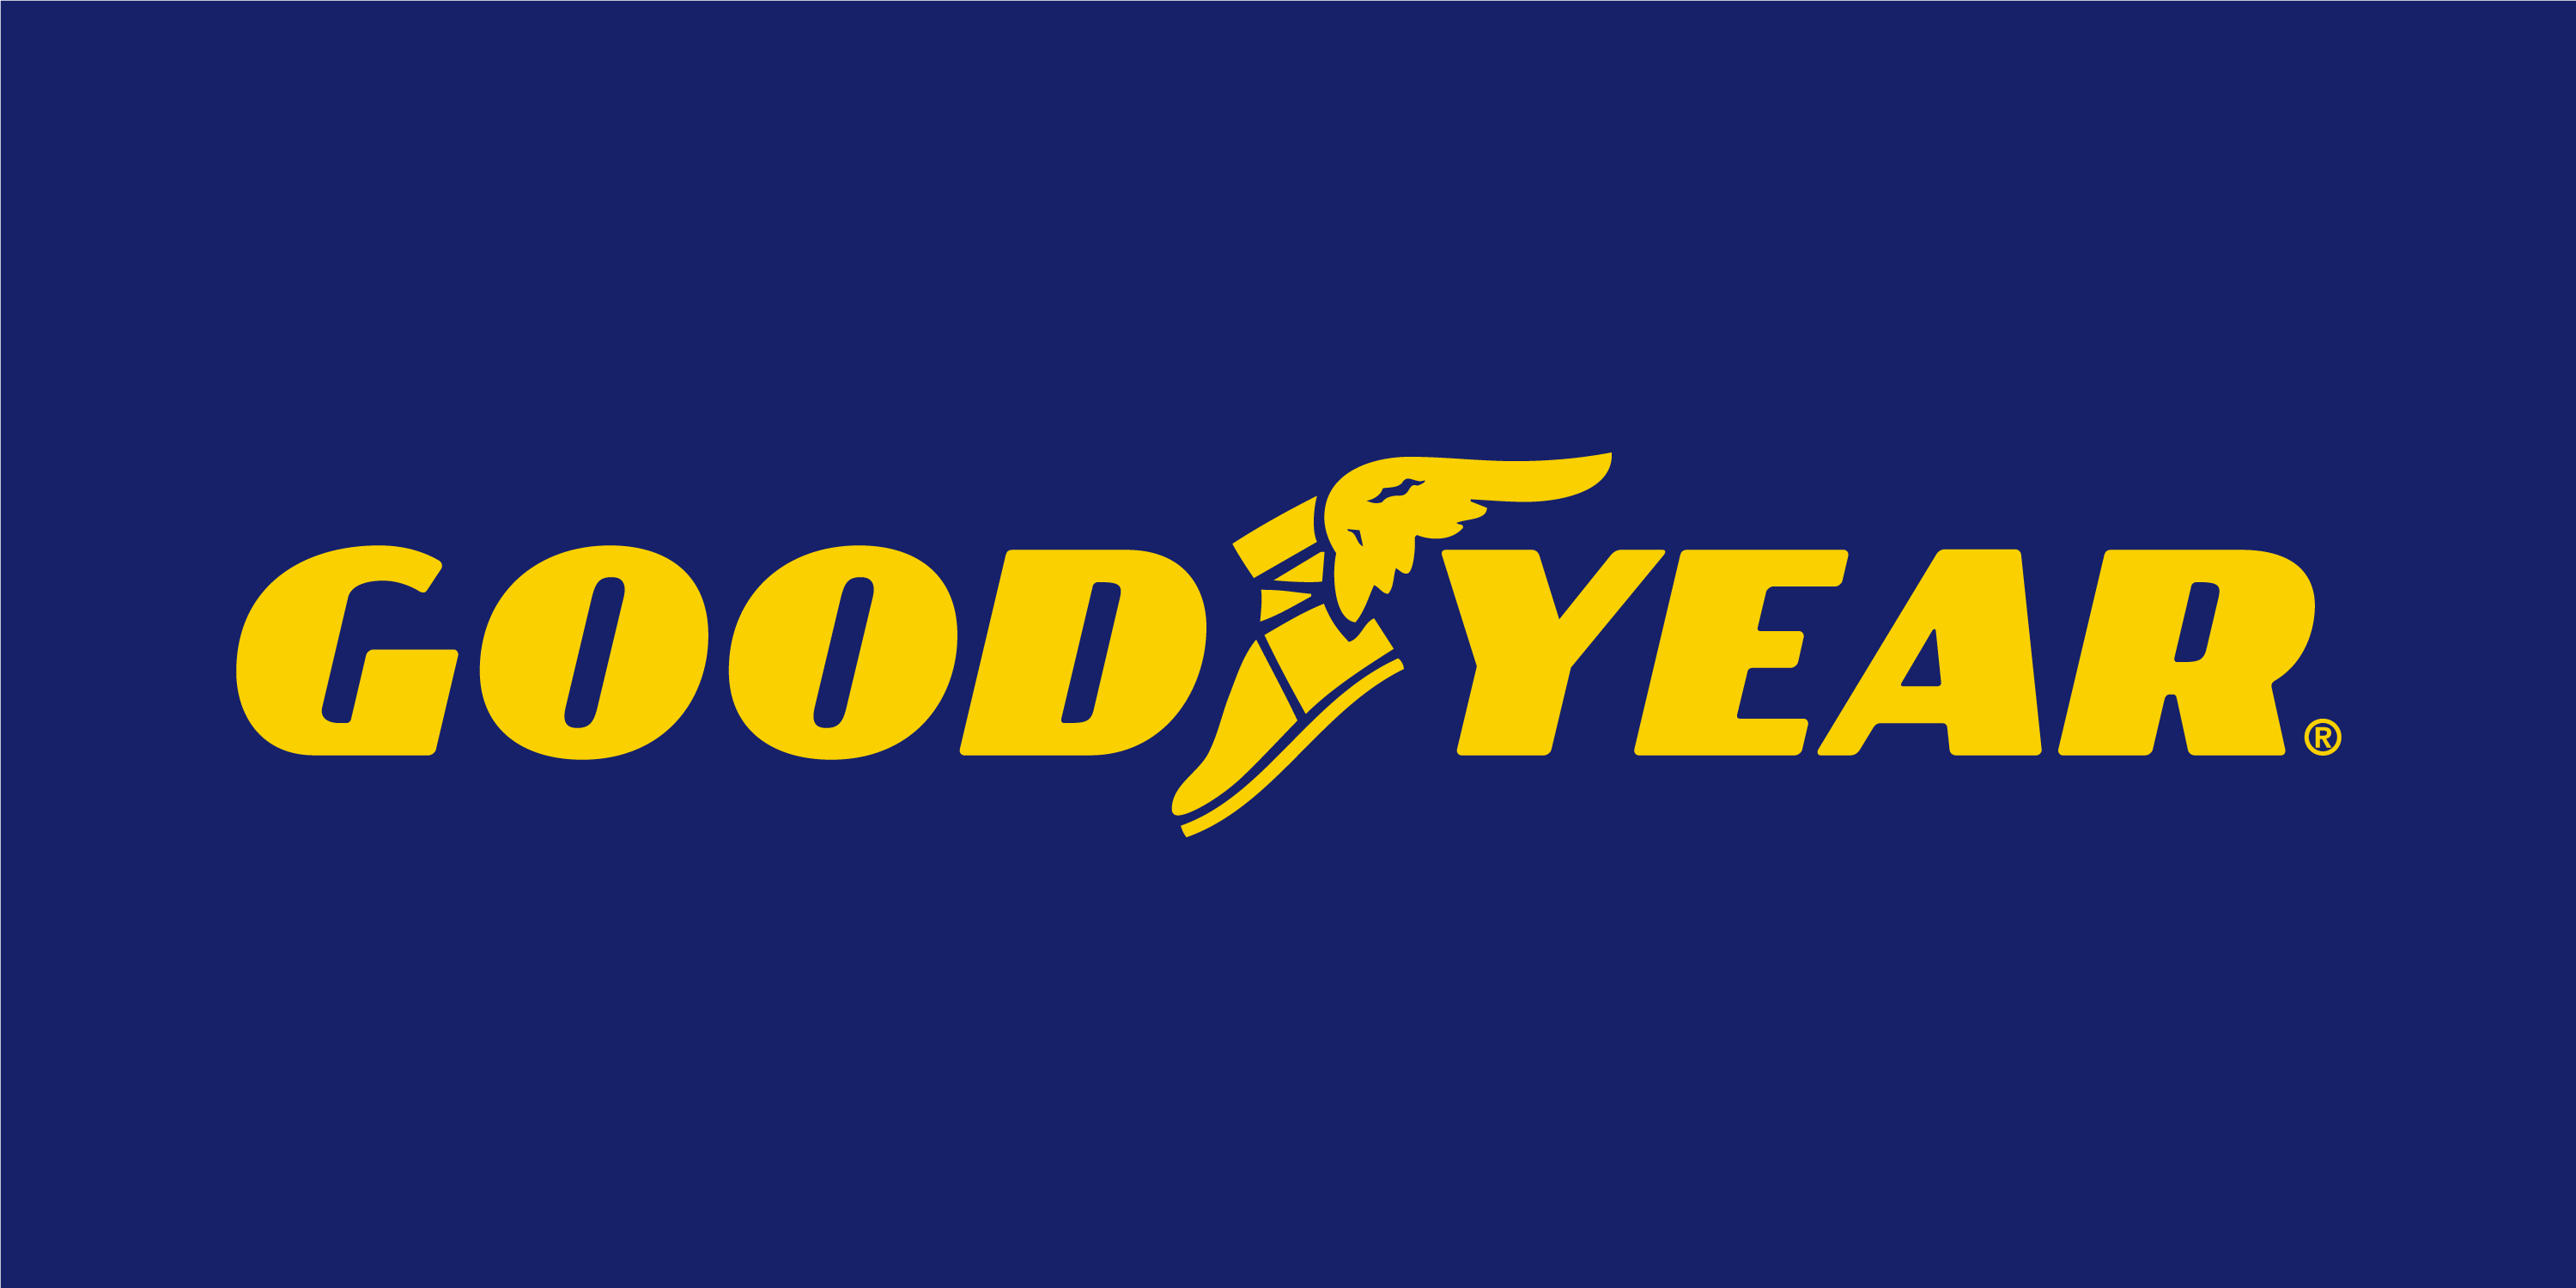 Image result for goodyear logo   CATCH   Pinterest   Goodyear logo ... 3fde75ee9a